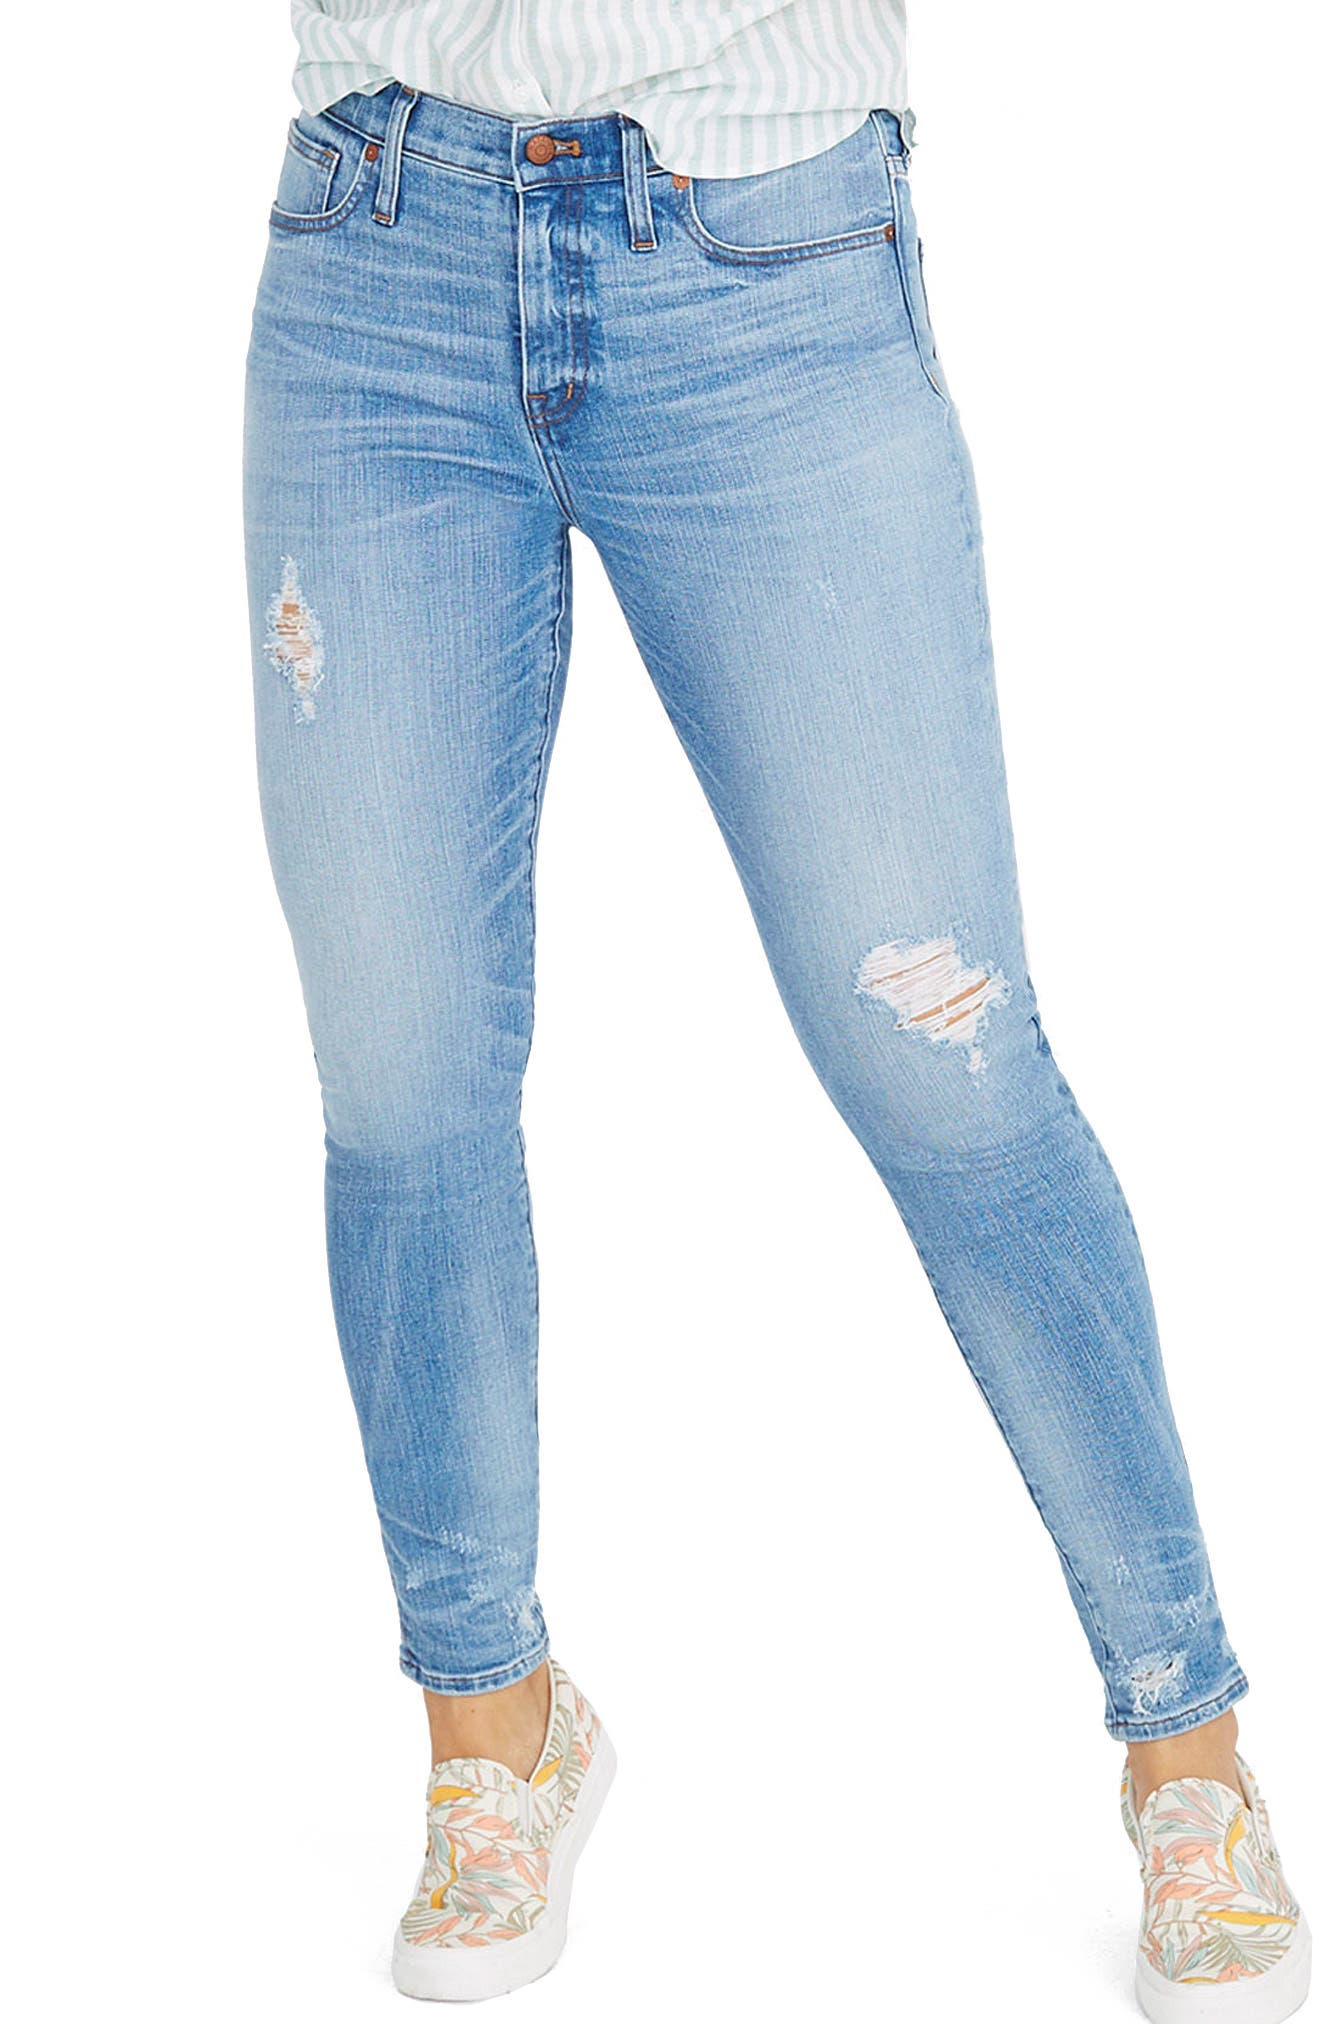 9-Inch Destructed Hem High Waist Skinny Jeans,                             Main thumbnail 1, color,                             400